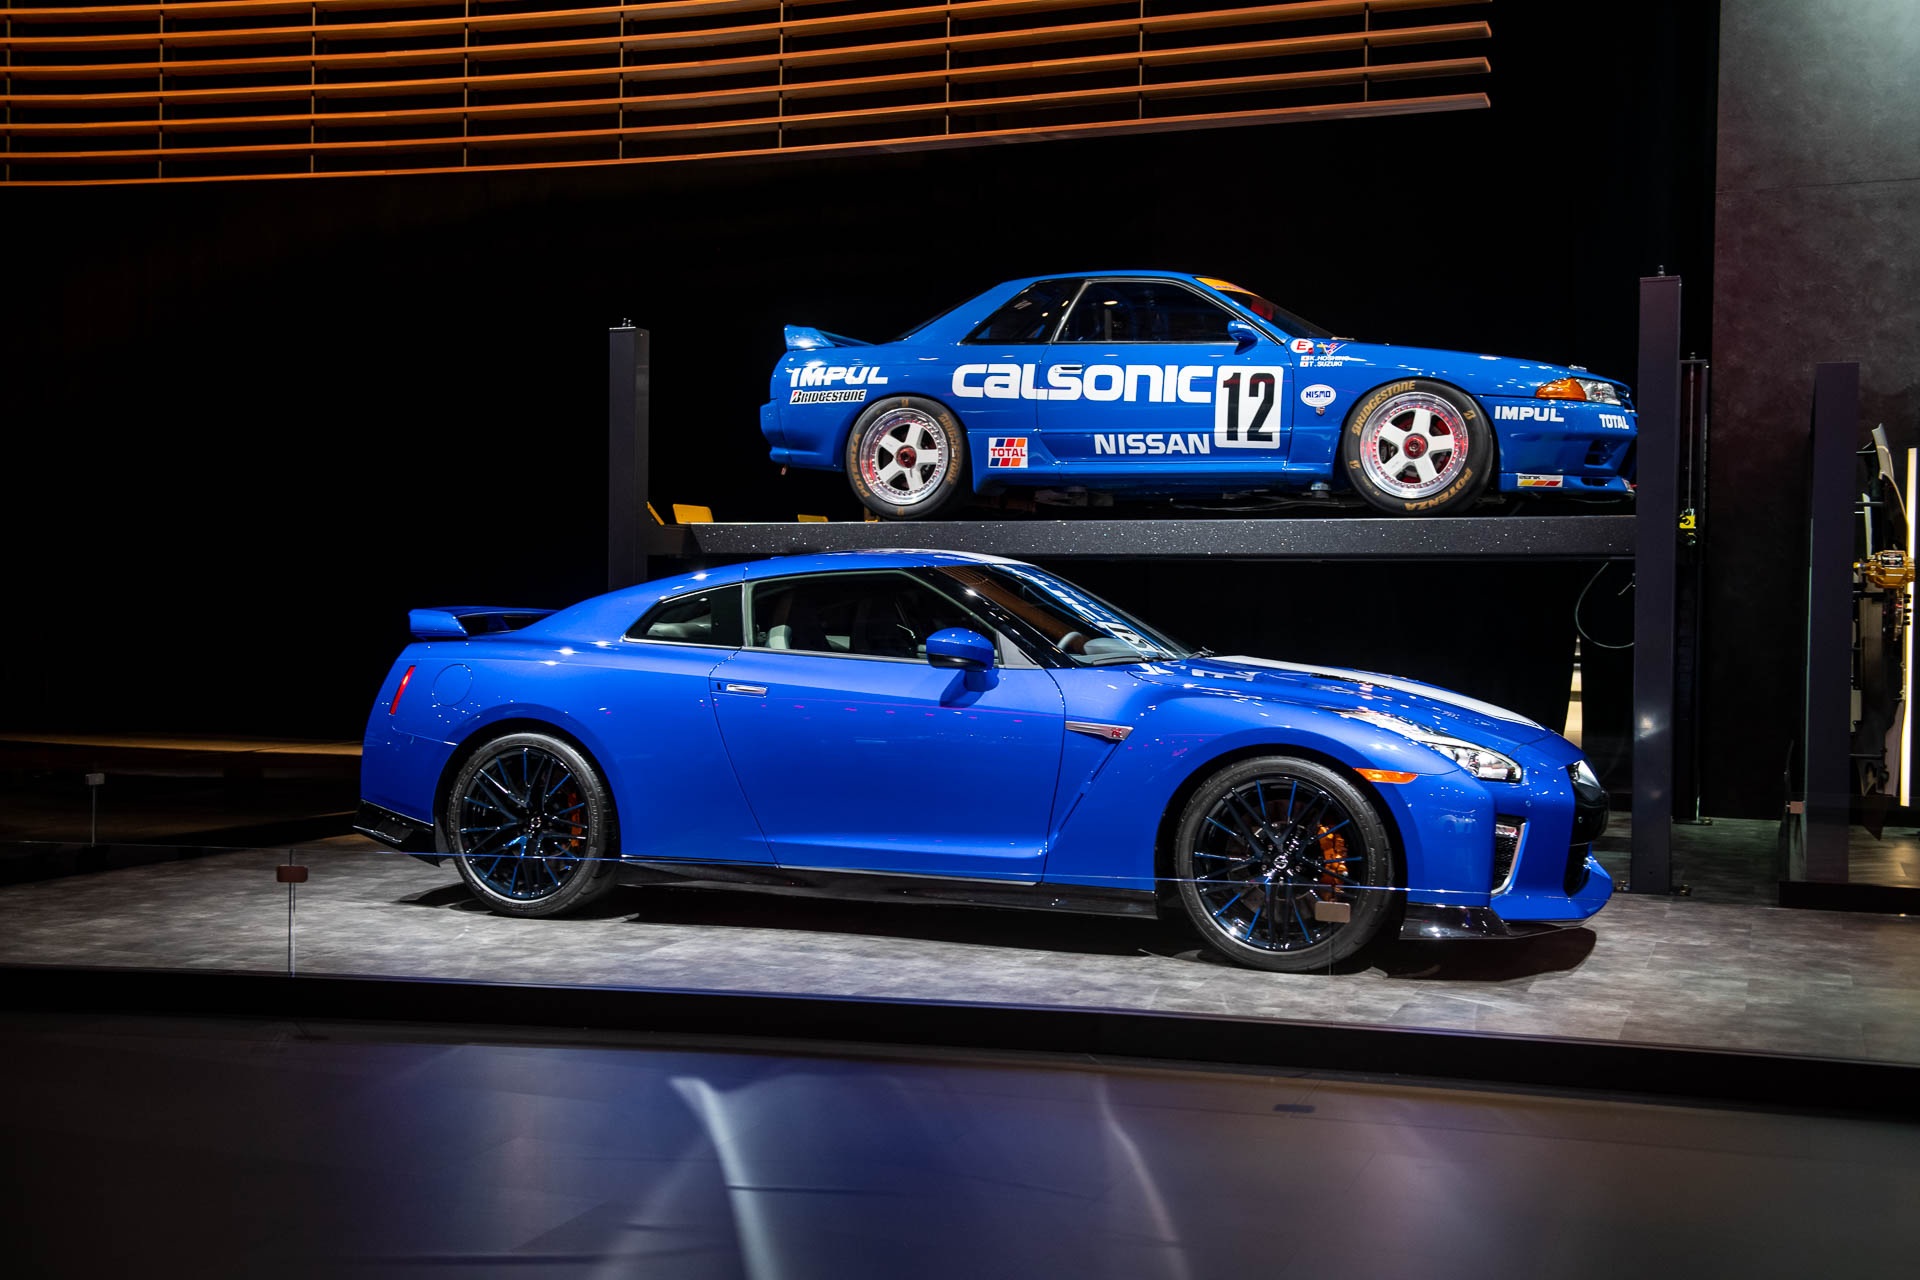 Nissan rolls out 50th anniversary GT-R with Bayside Blue paint